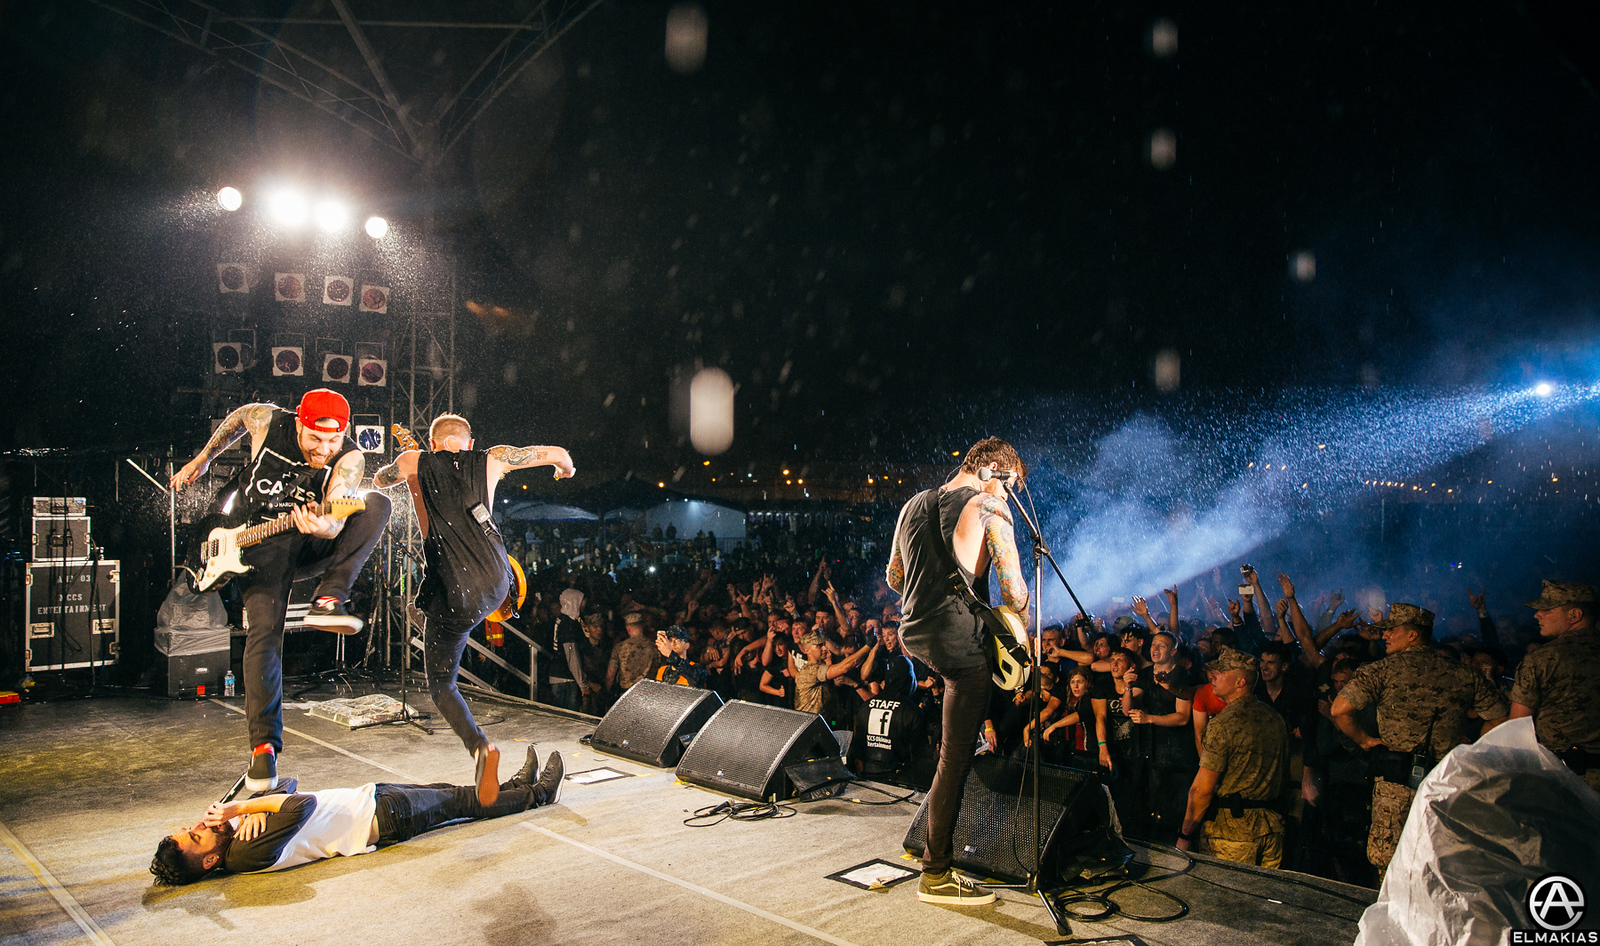 A Day To Remember live in Okinawa, Japan